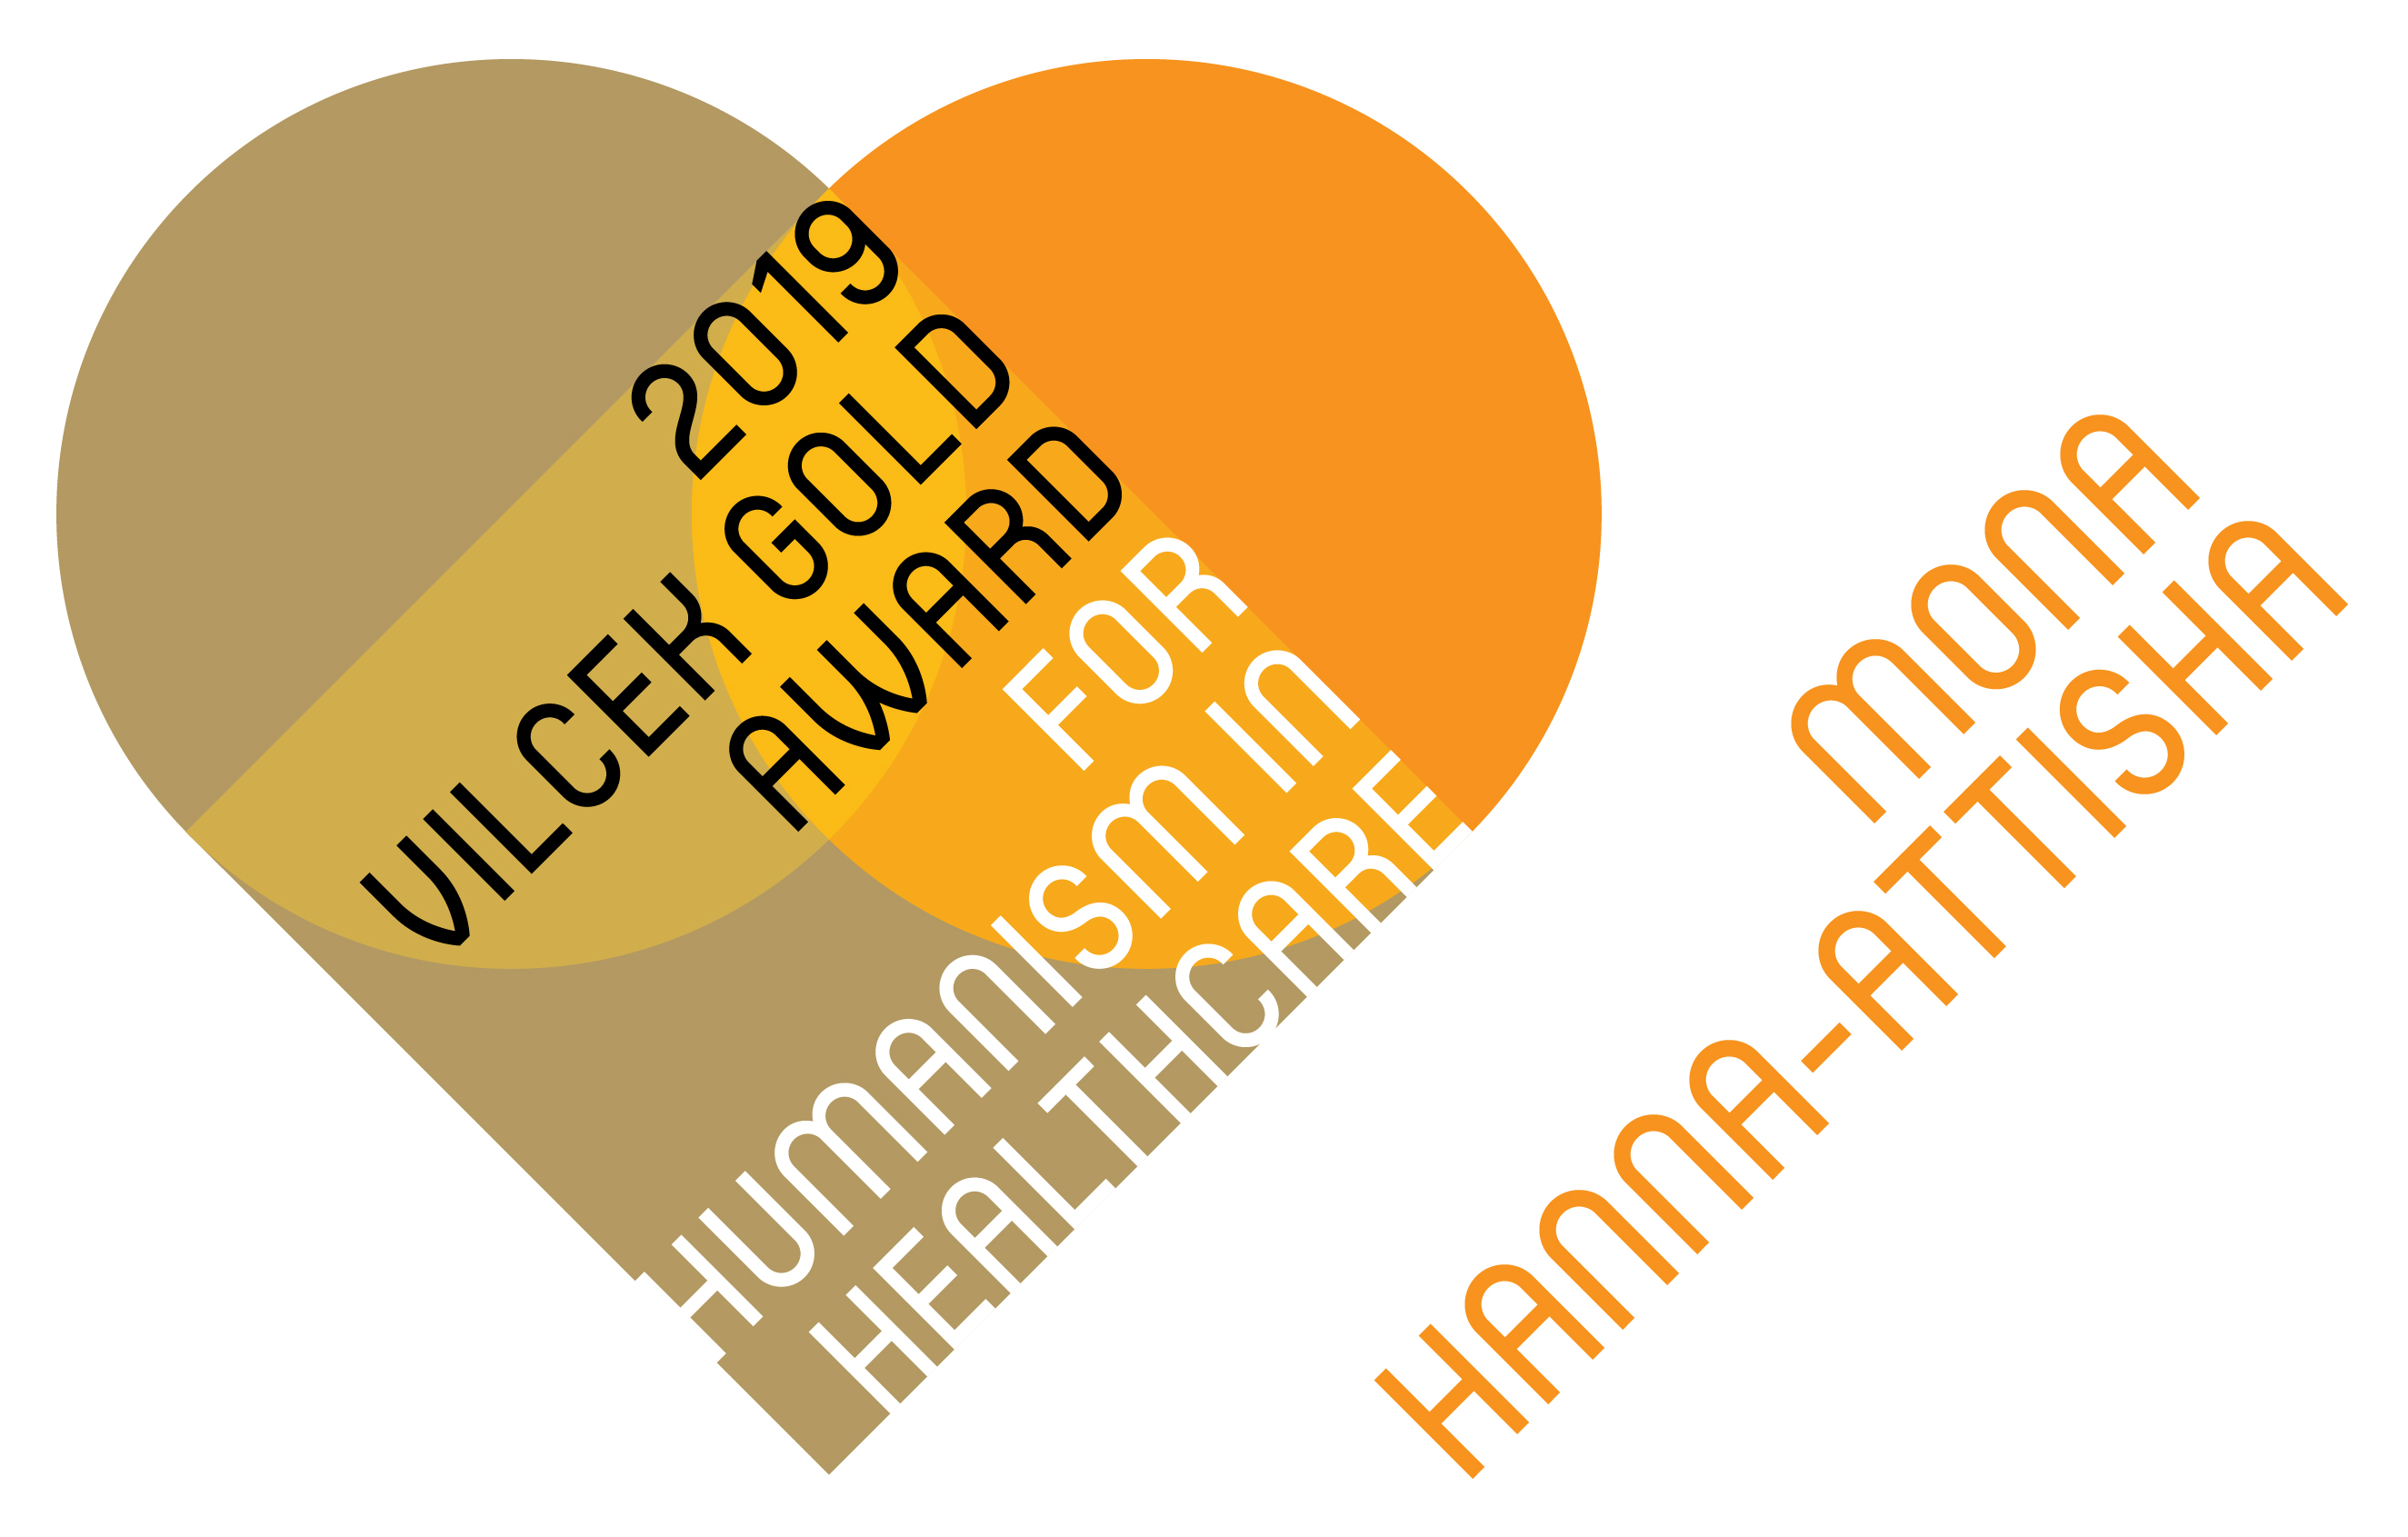 A graphic representation of the 2019 Vilcek-Gold Award for Humanism in Healthcare.